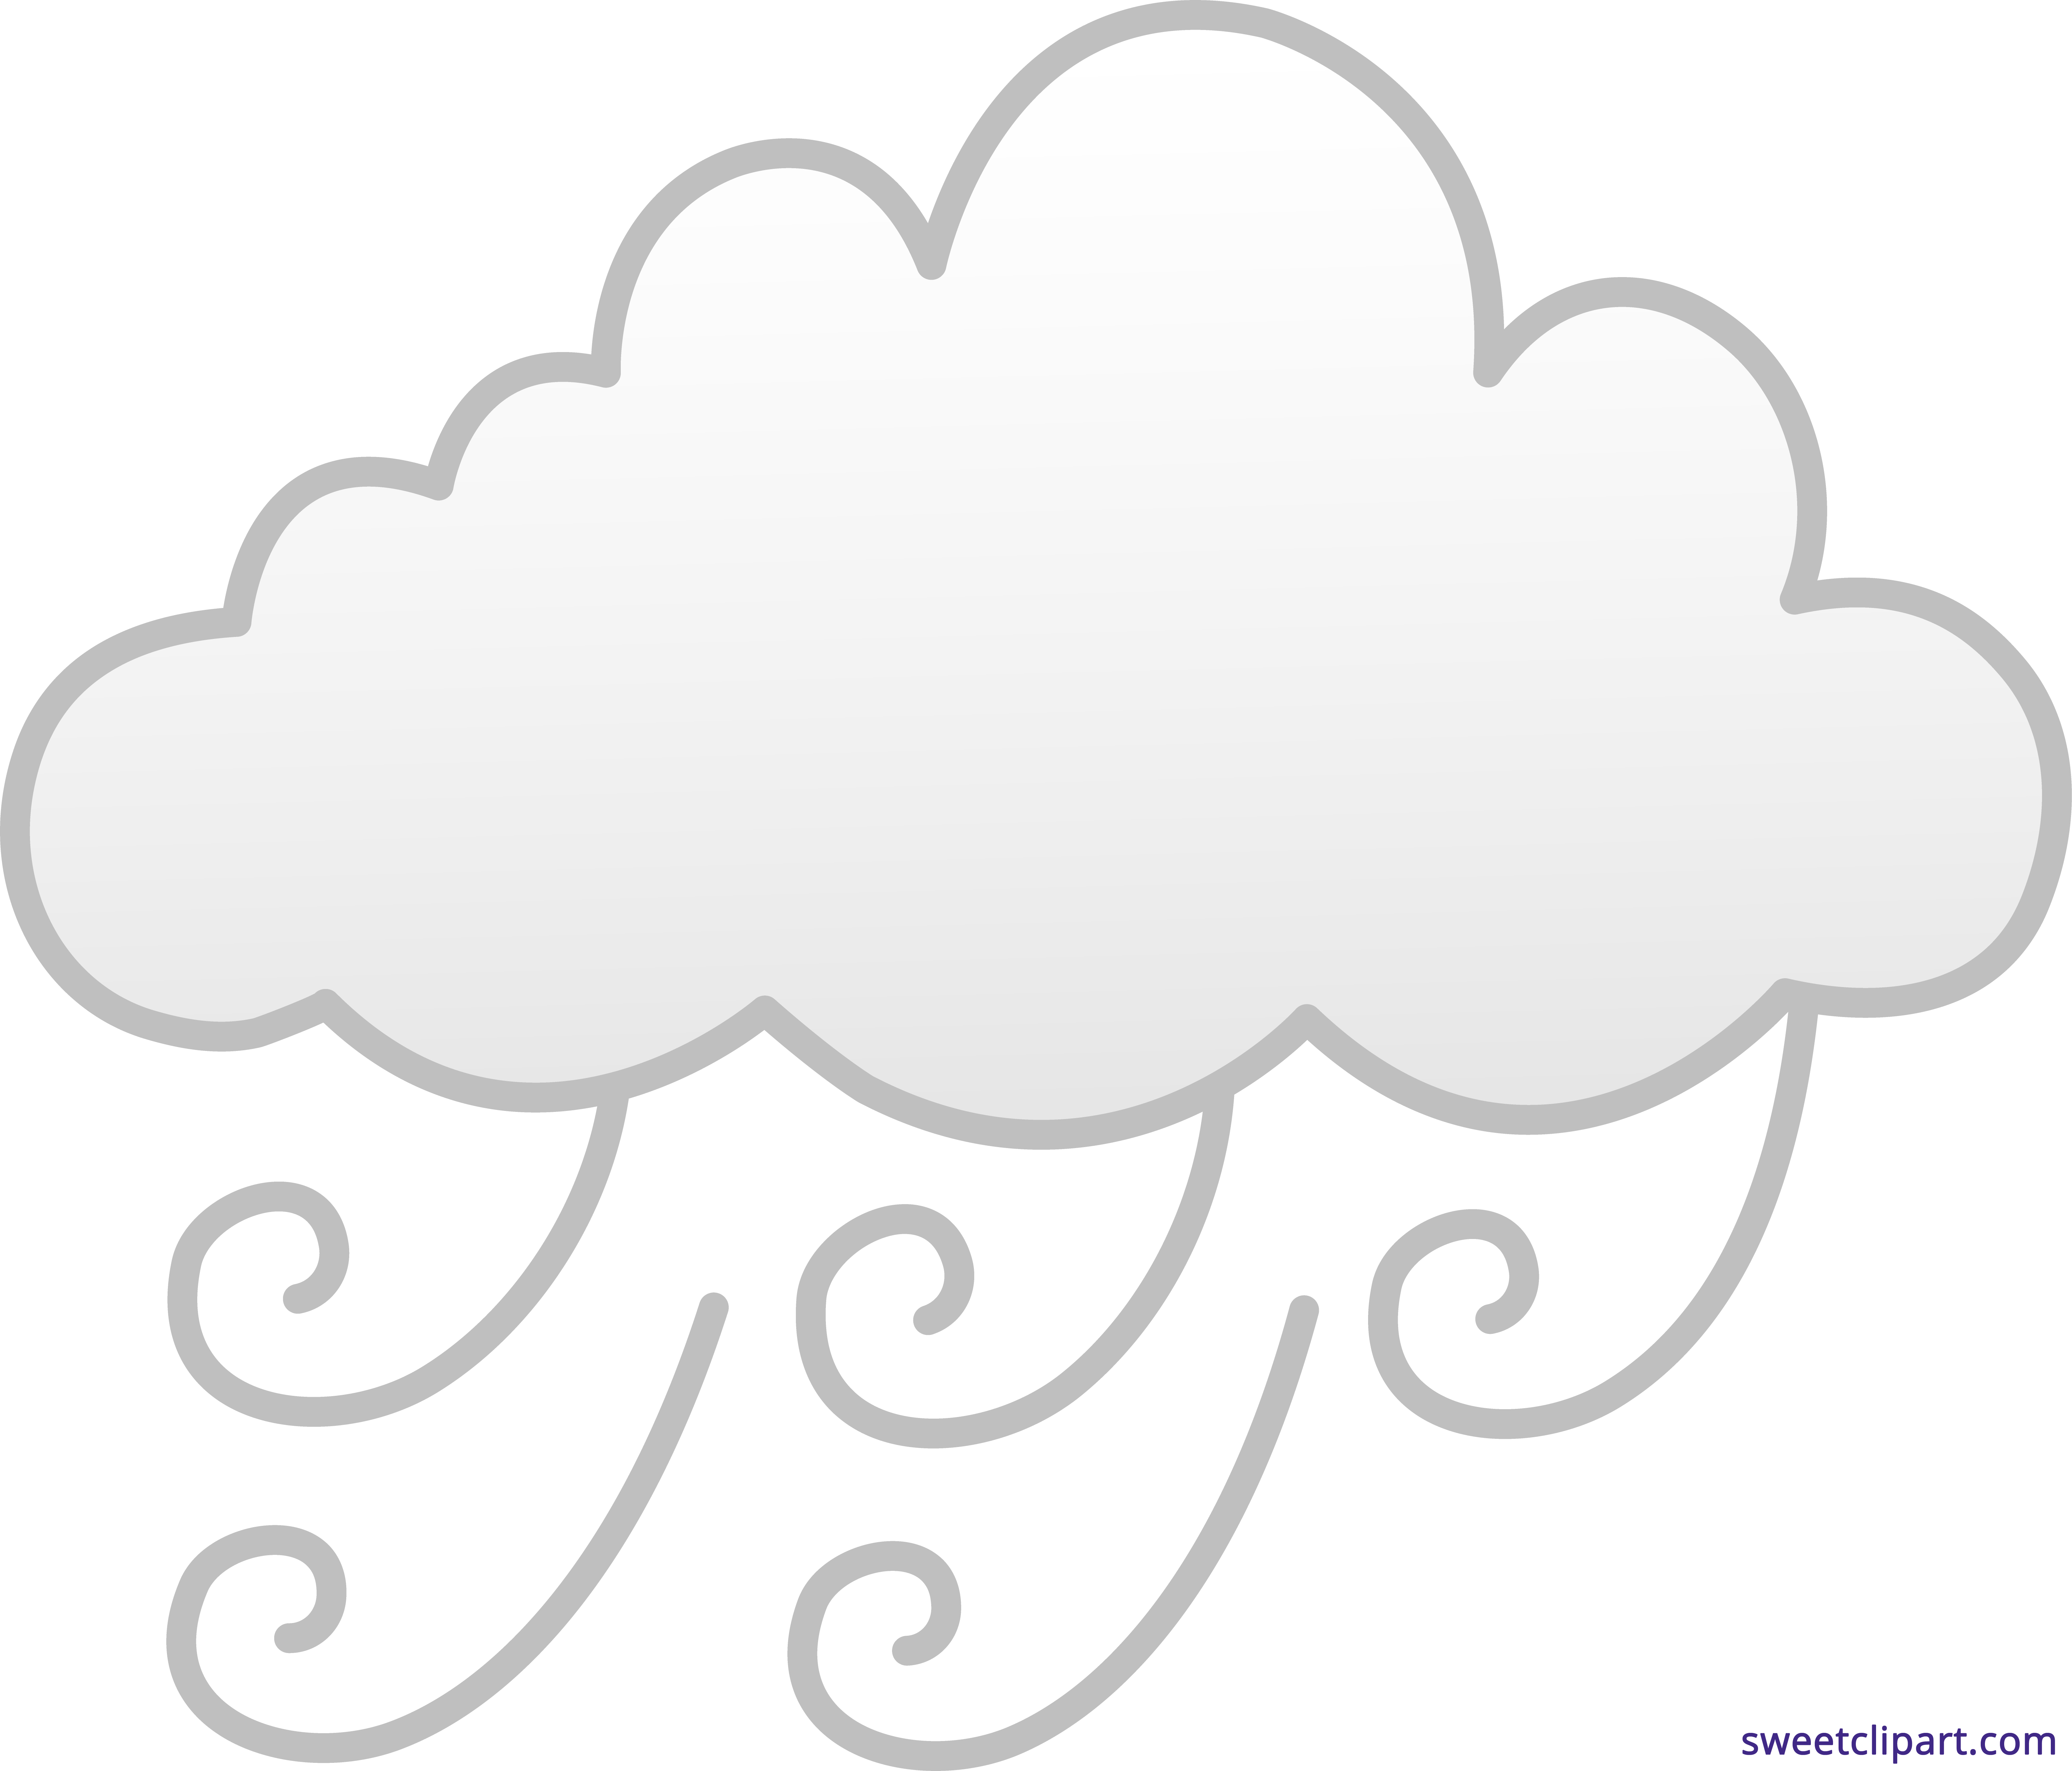 Windy clipart kind weather. Or foggy sweet clip